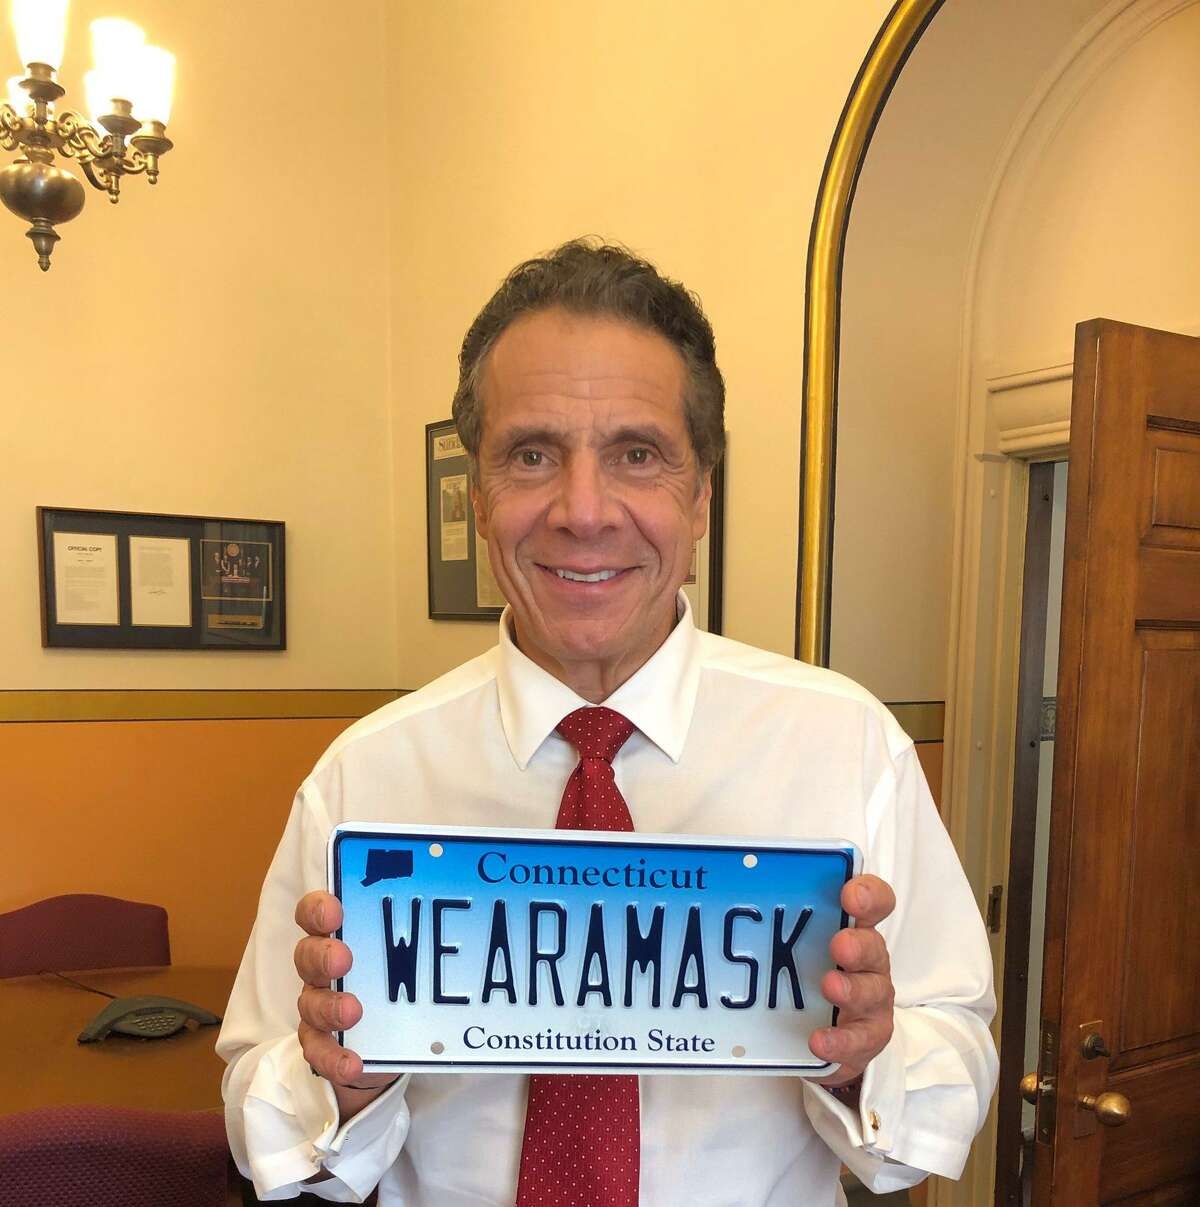 New York Gov. Andrew Cuomo displays a Connecticut license plate sent to him by Gov. Ned Lamont.